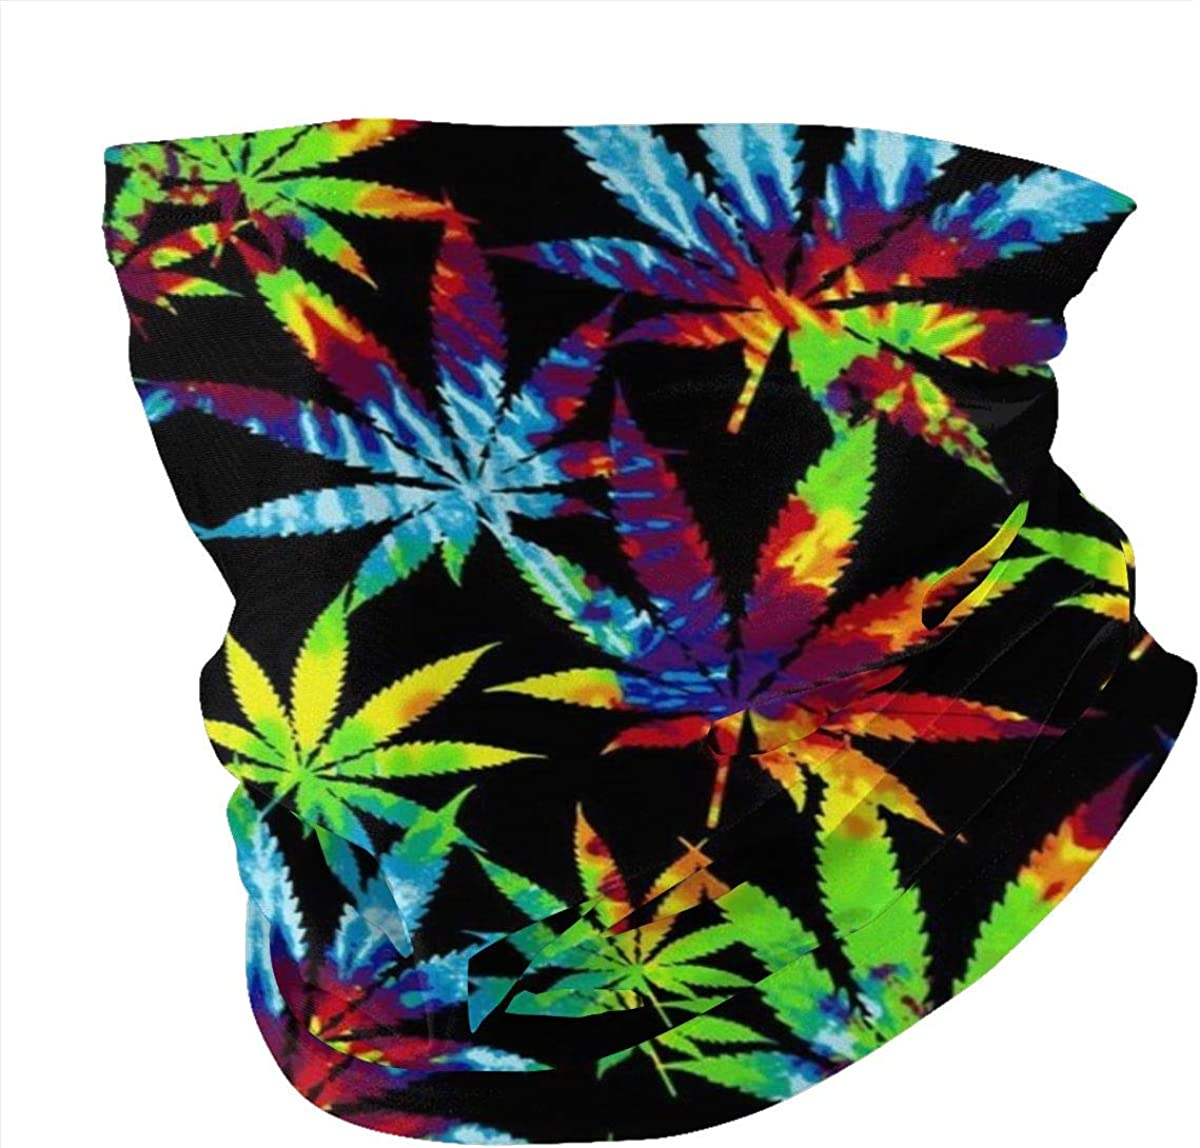 Tie Dye Weed Leaves Bandana Headband Face Mask with Filters Neck Gaiter Scarf for Dust UV Sun Magic Headwear Outdoors